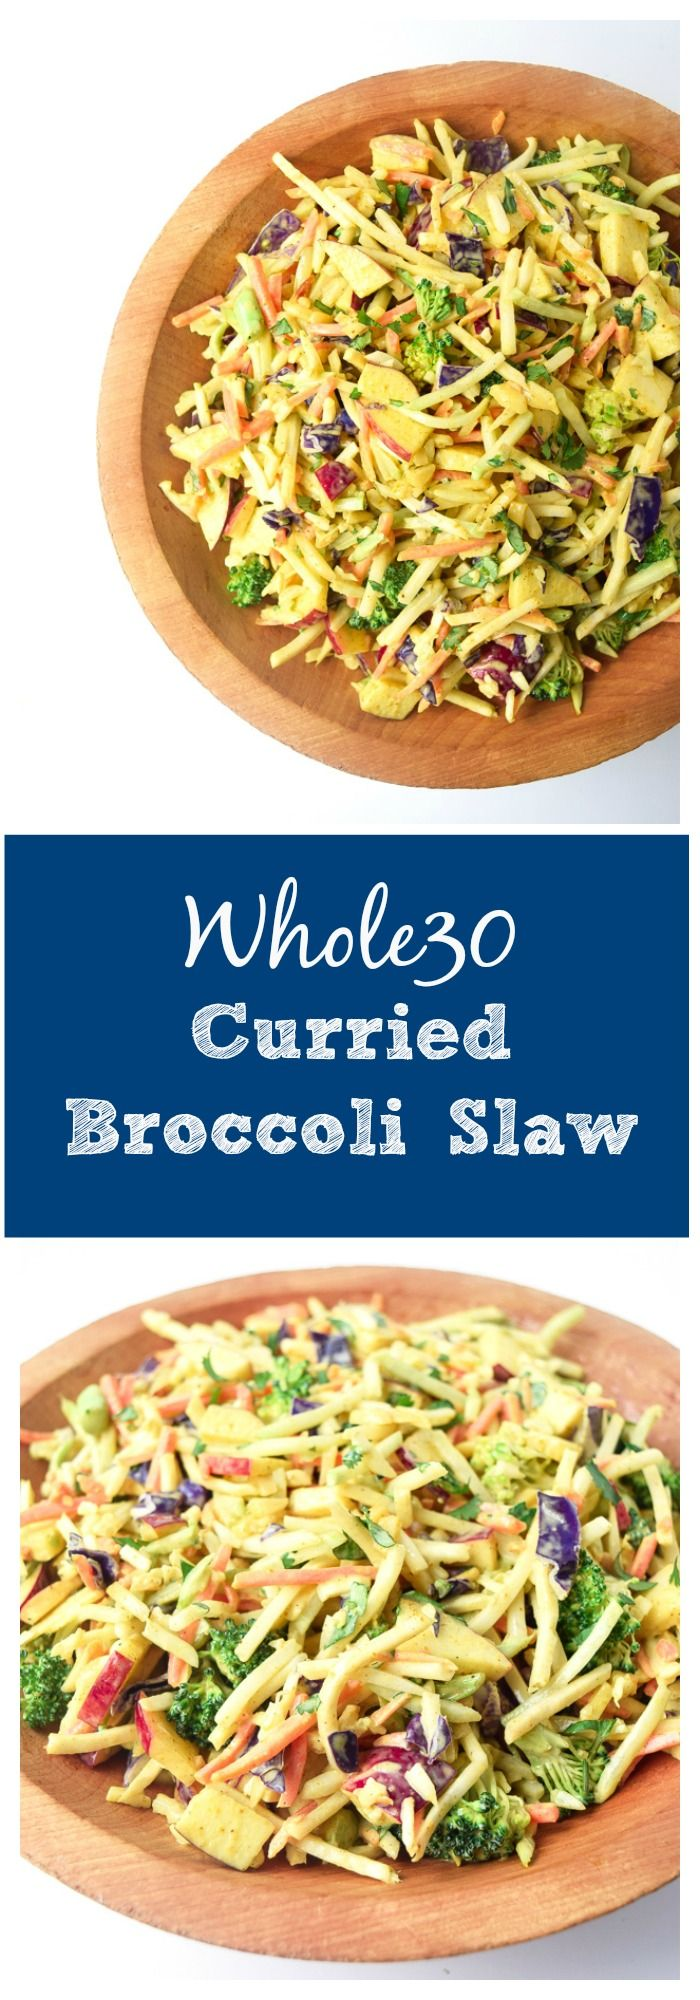 Whole30 Curried Broccoli Slaw - crunchy, satisfying, and nutritious, this salad packs a huge punch of flavor and is a great addition to any meal! | tastythin.com